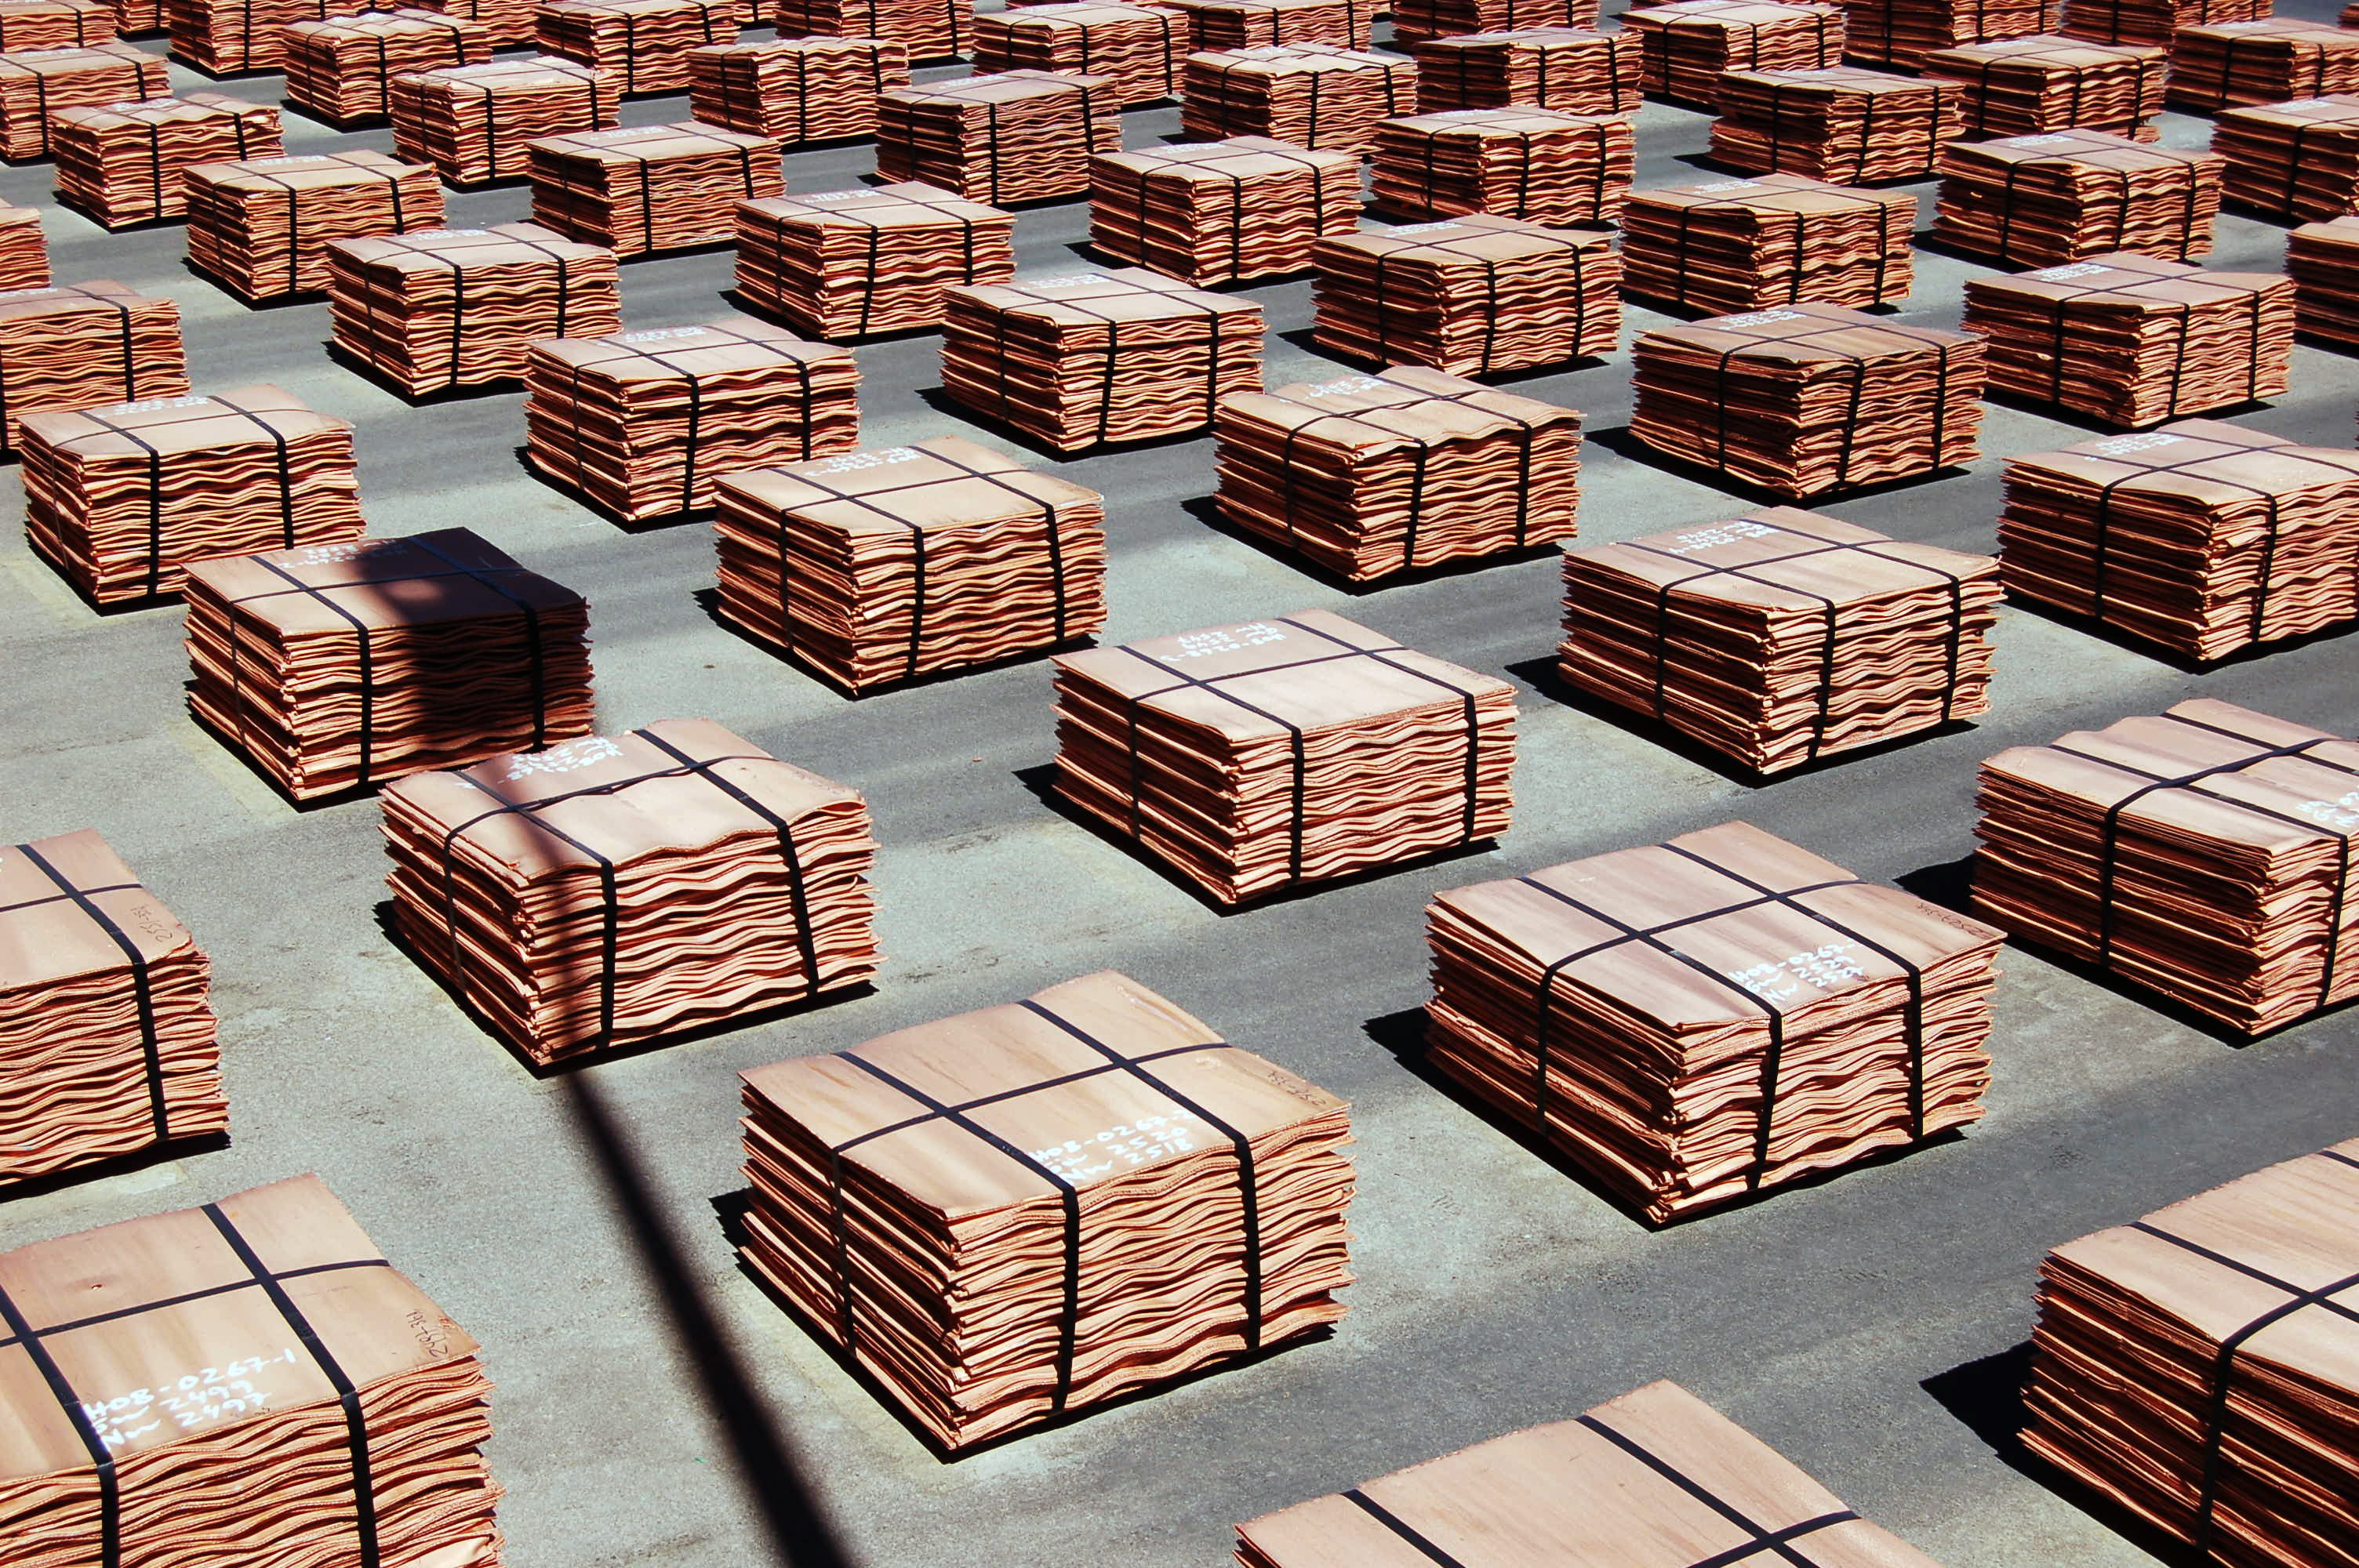 copper plate stacked in bales on a factory floor